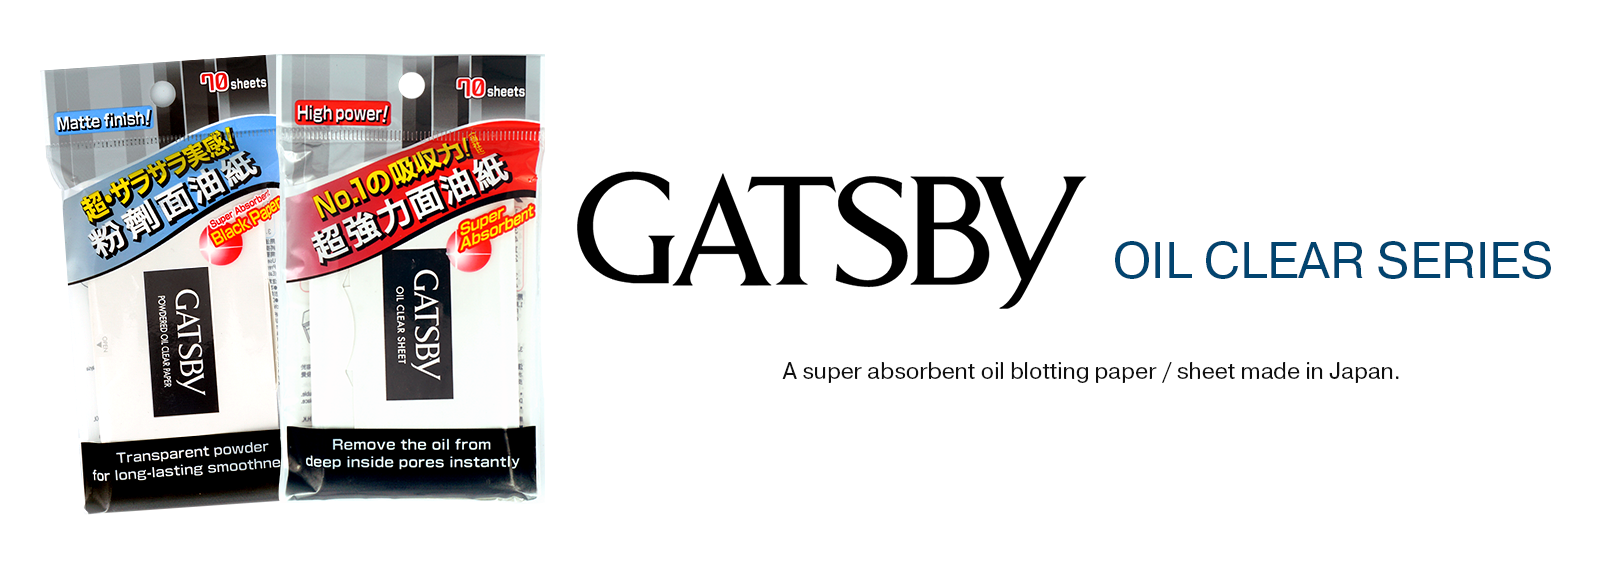 GATSBY Oil Clear Paper Banner